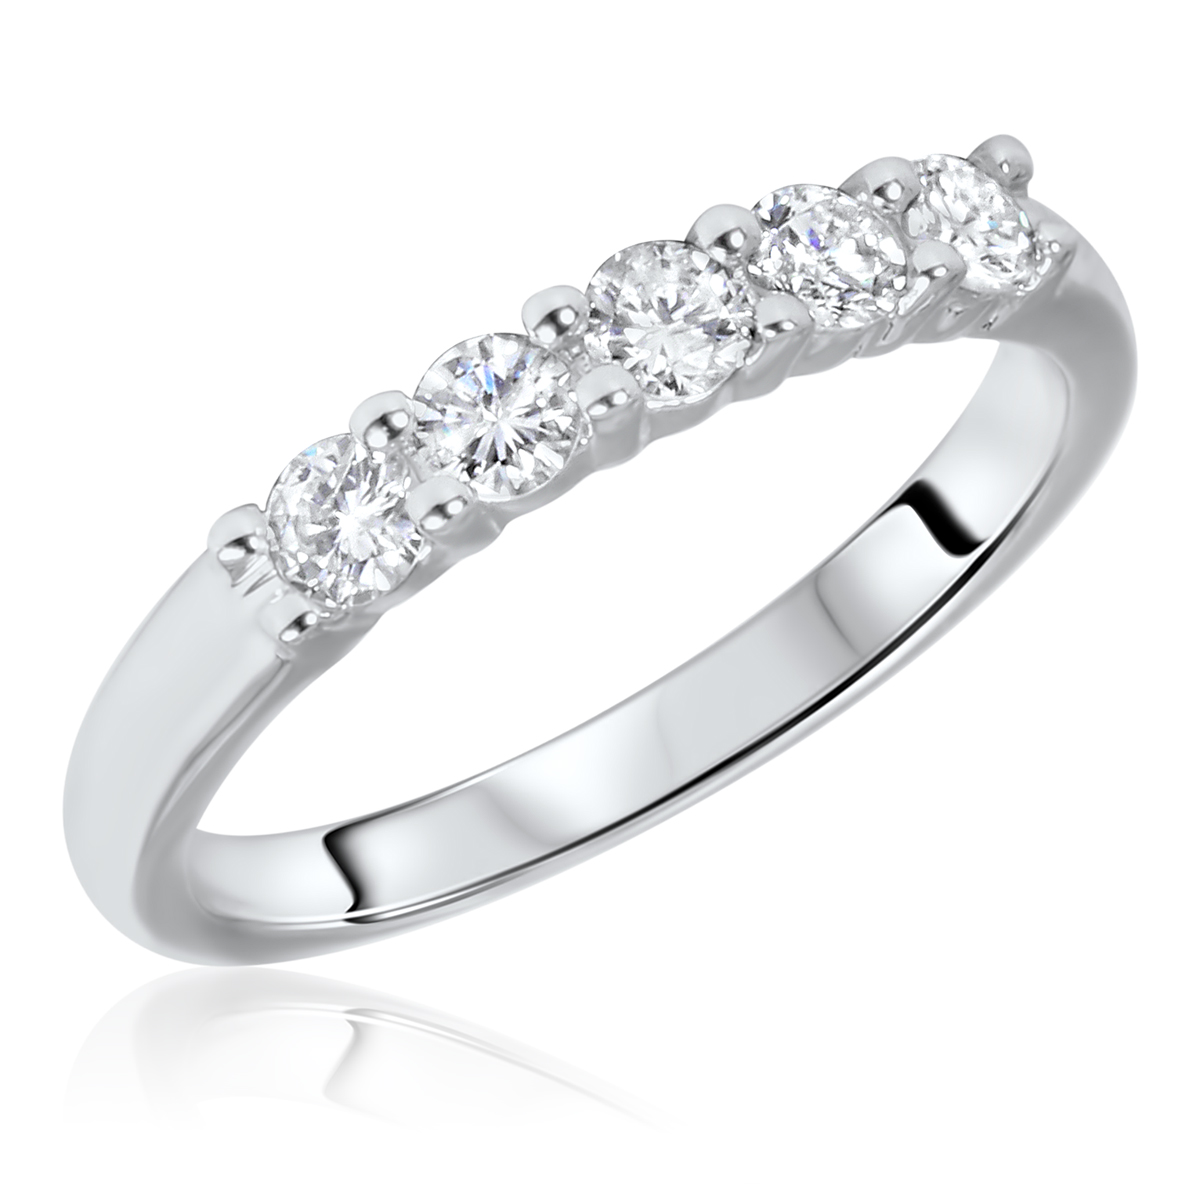 1/2 CT. T.W. Round Cut 5 Stone Diamond Anniversary Ladies Band 14K White Gold-